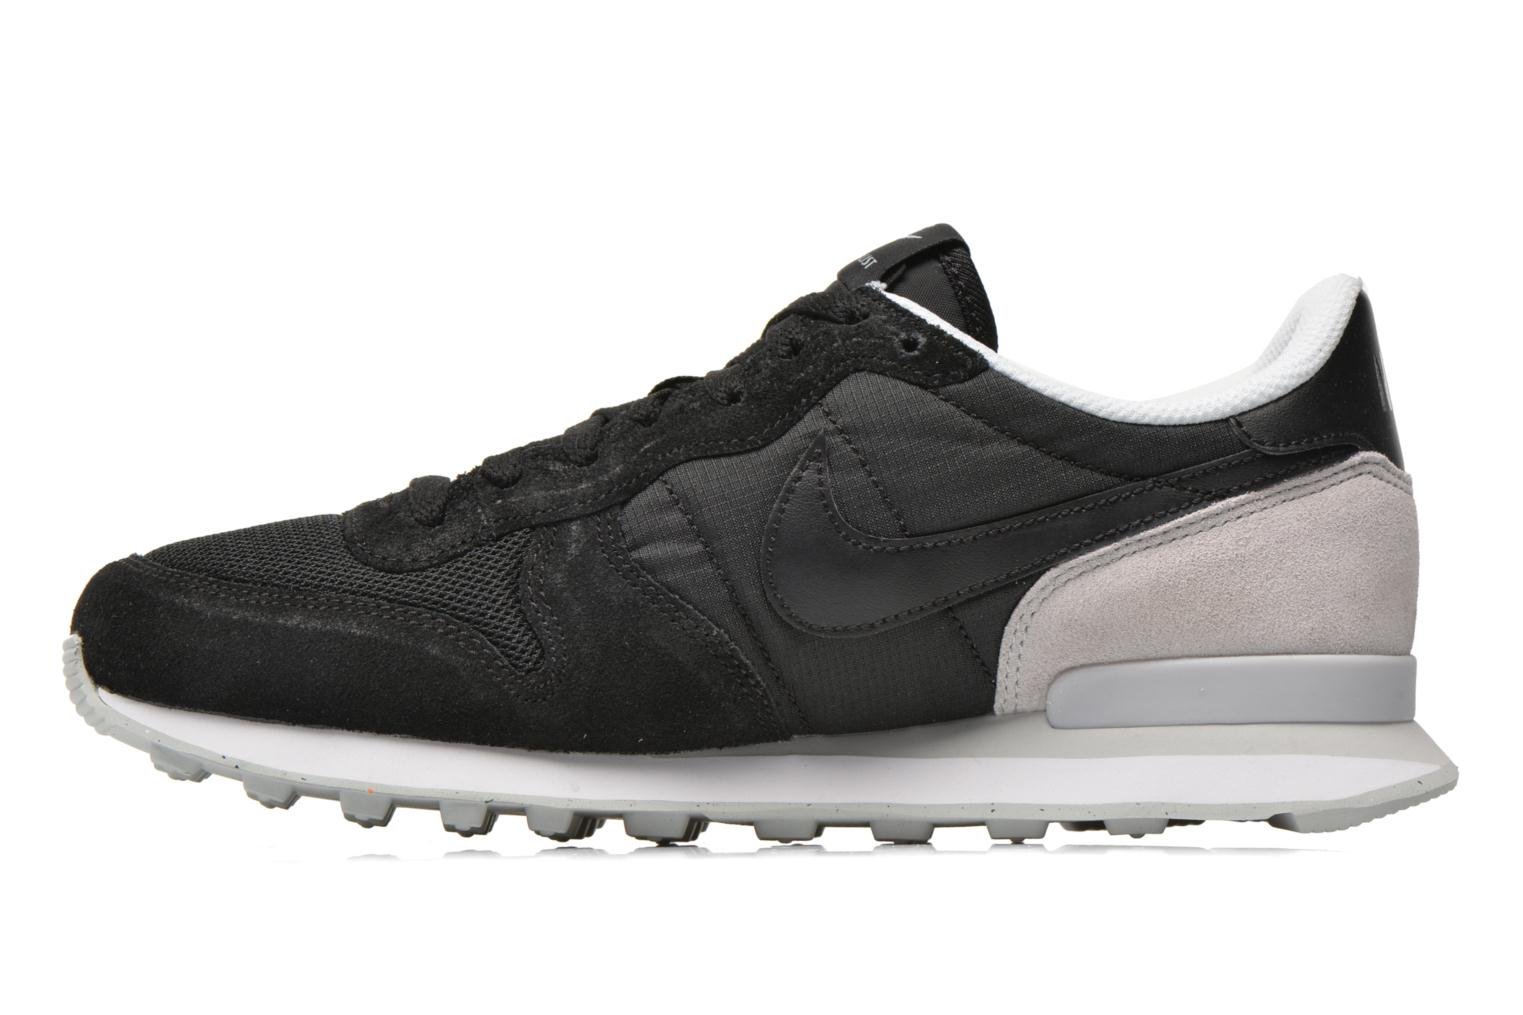 Nike Internationalist Black/Black-Pure Platinum-Wht